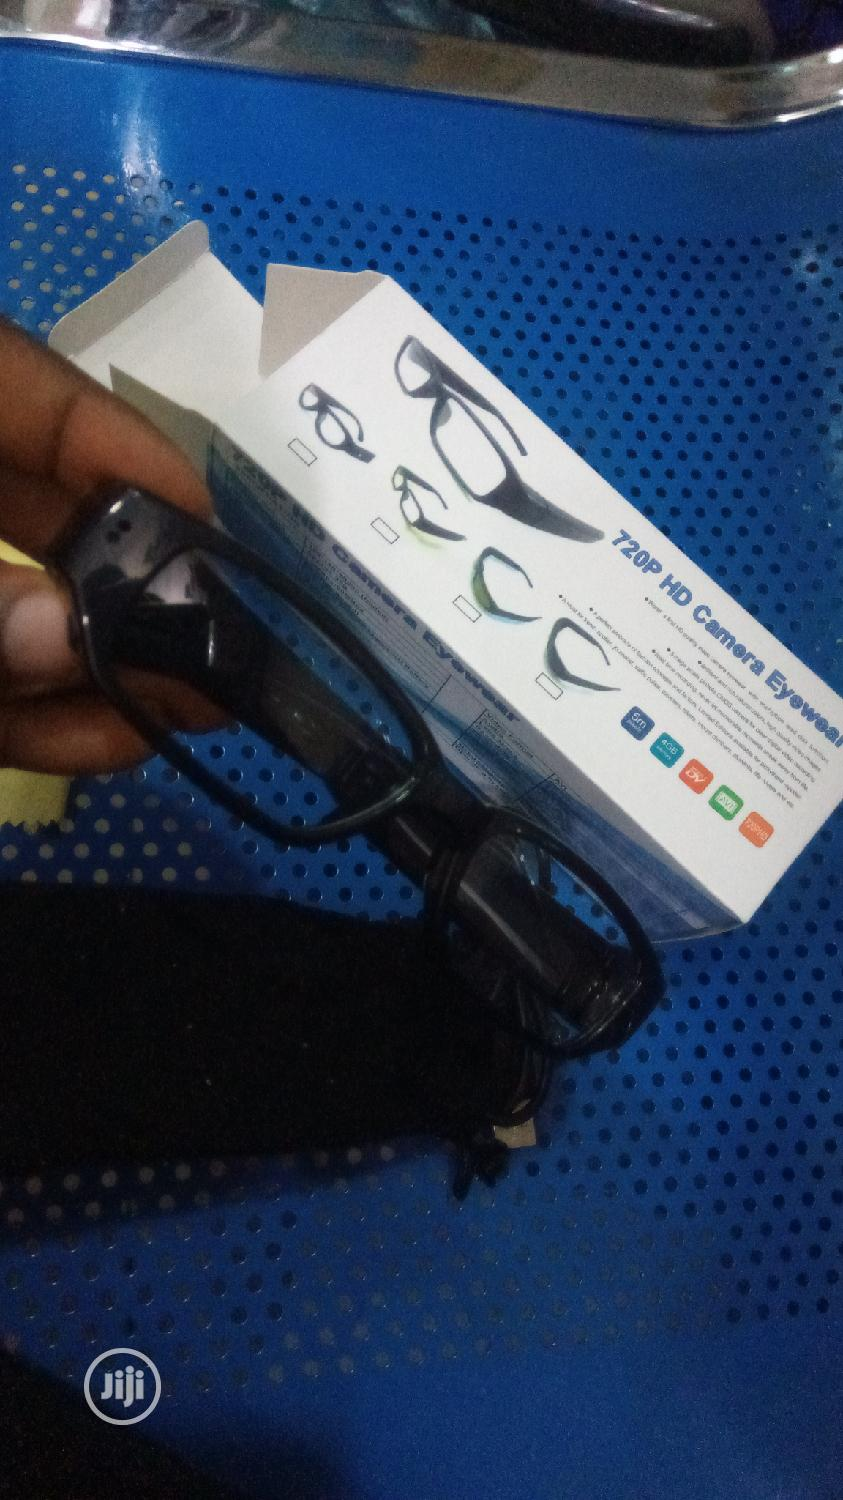 720 HD Spy Glass Camera Eyeswear | Security & Surveillance for sale in Ikeja, Lagos State, Nigeria